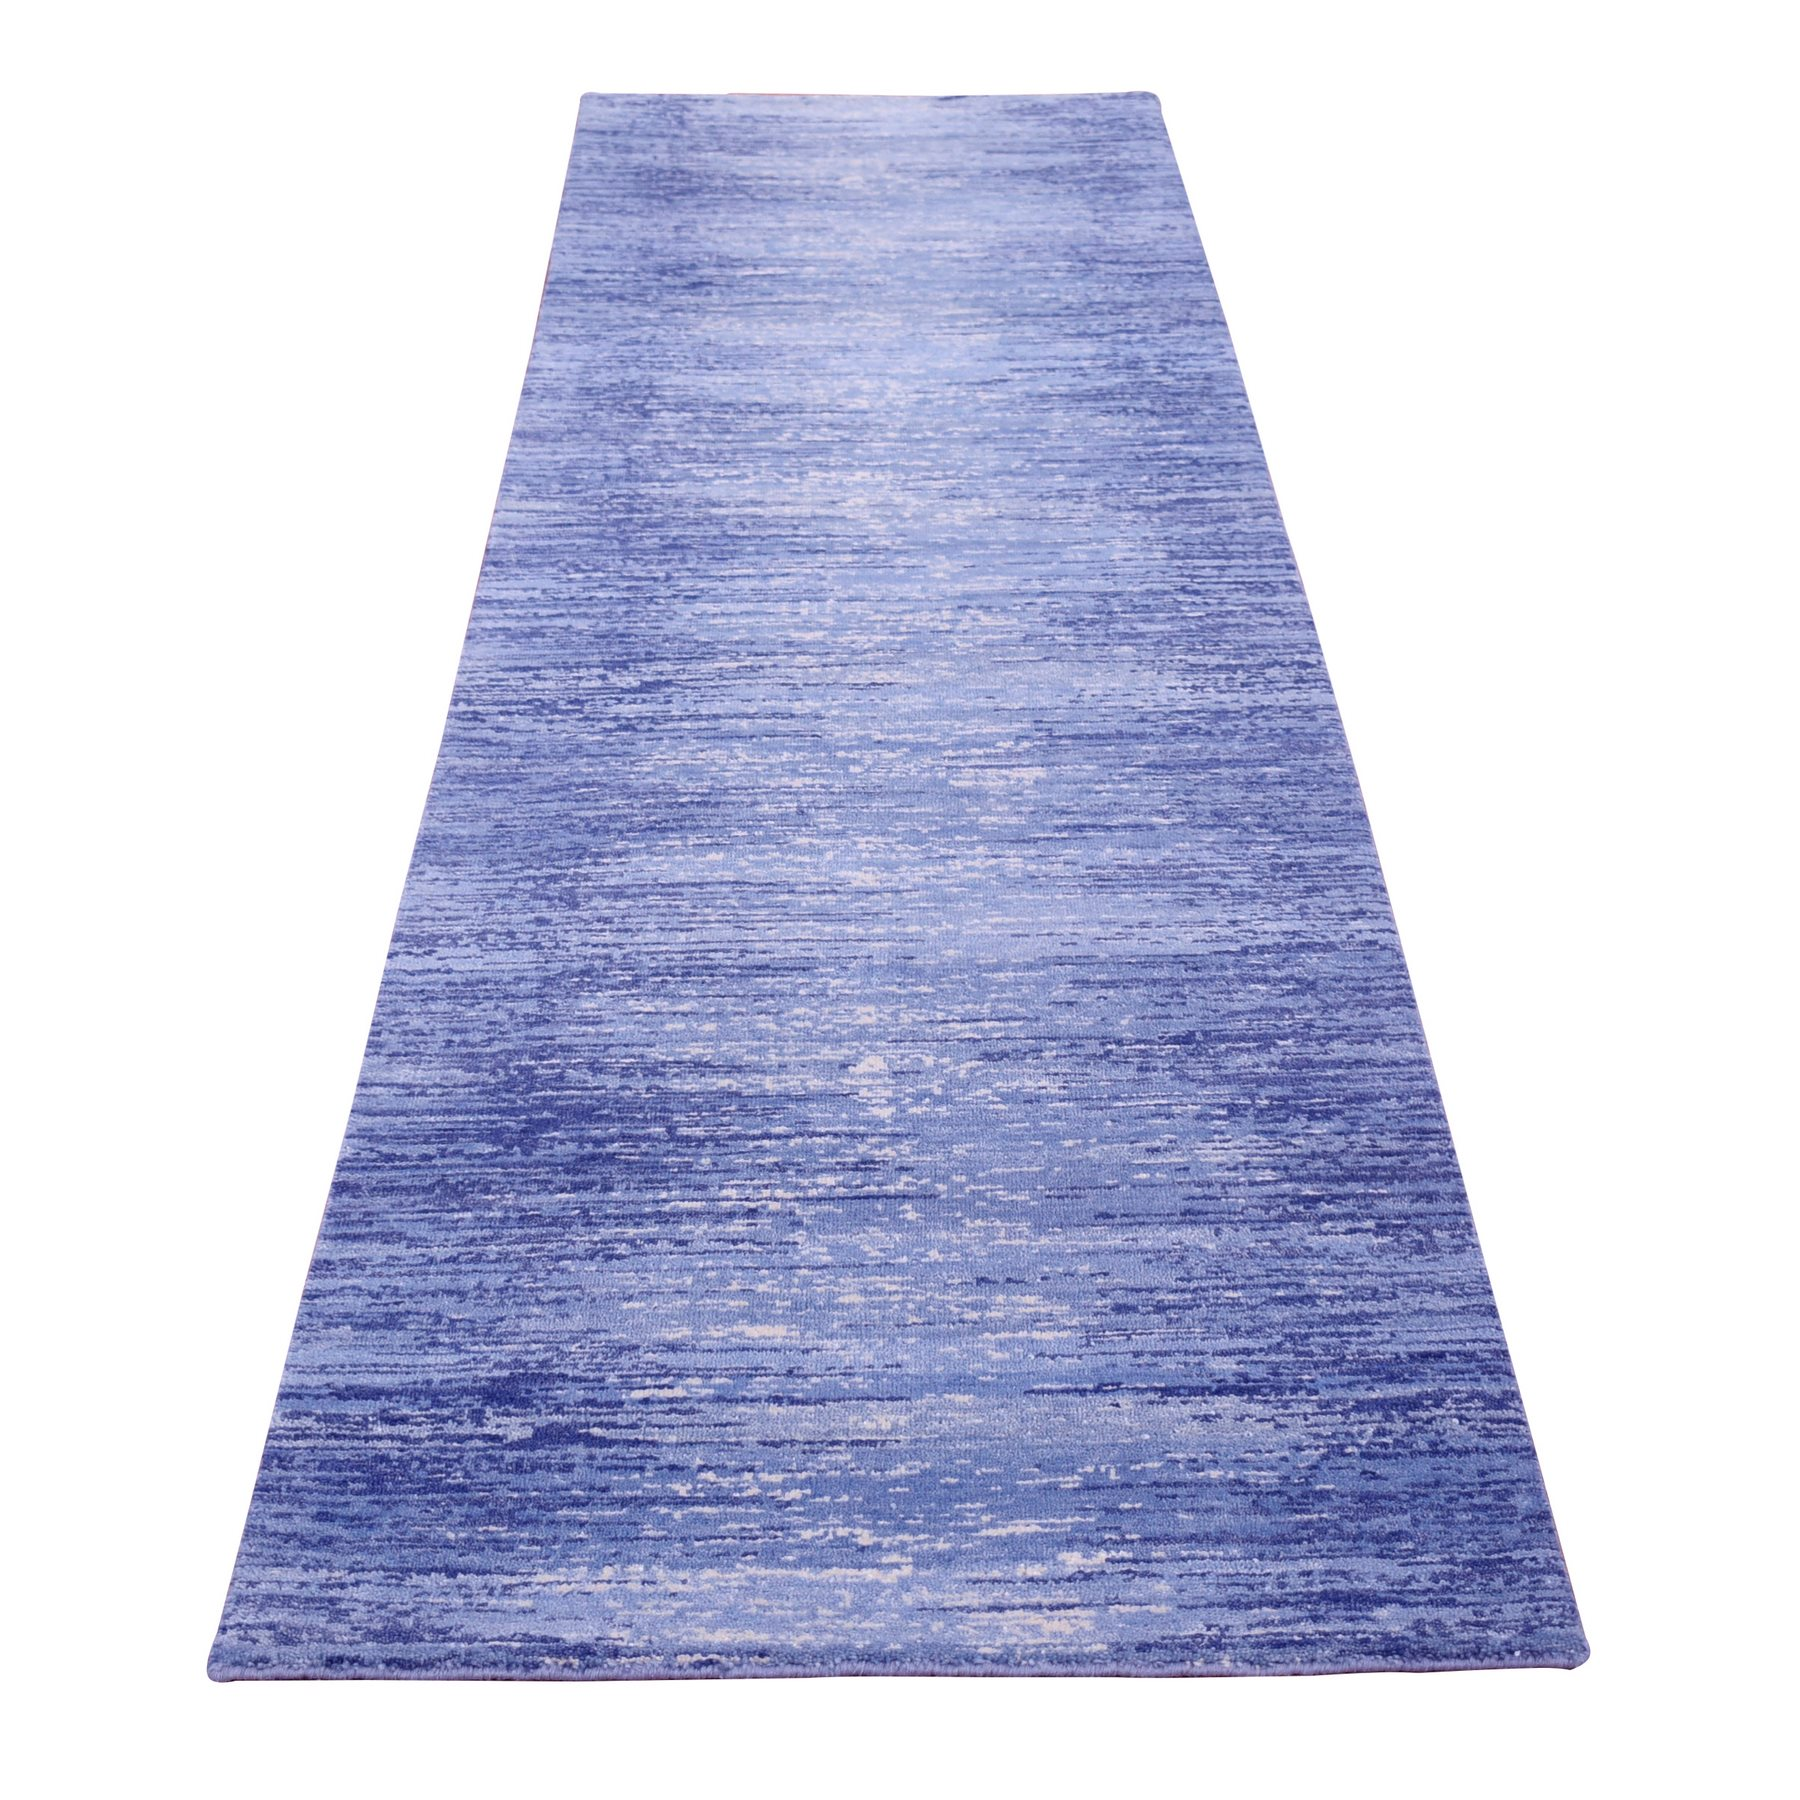 Mid Century Modern Collection Hand Knotted Blue Rug No: 1133758